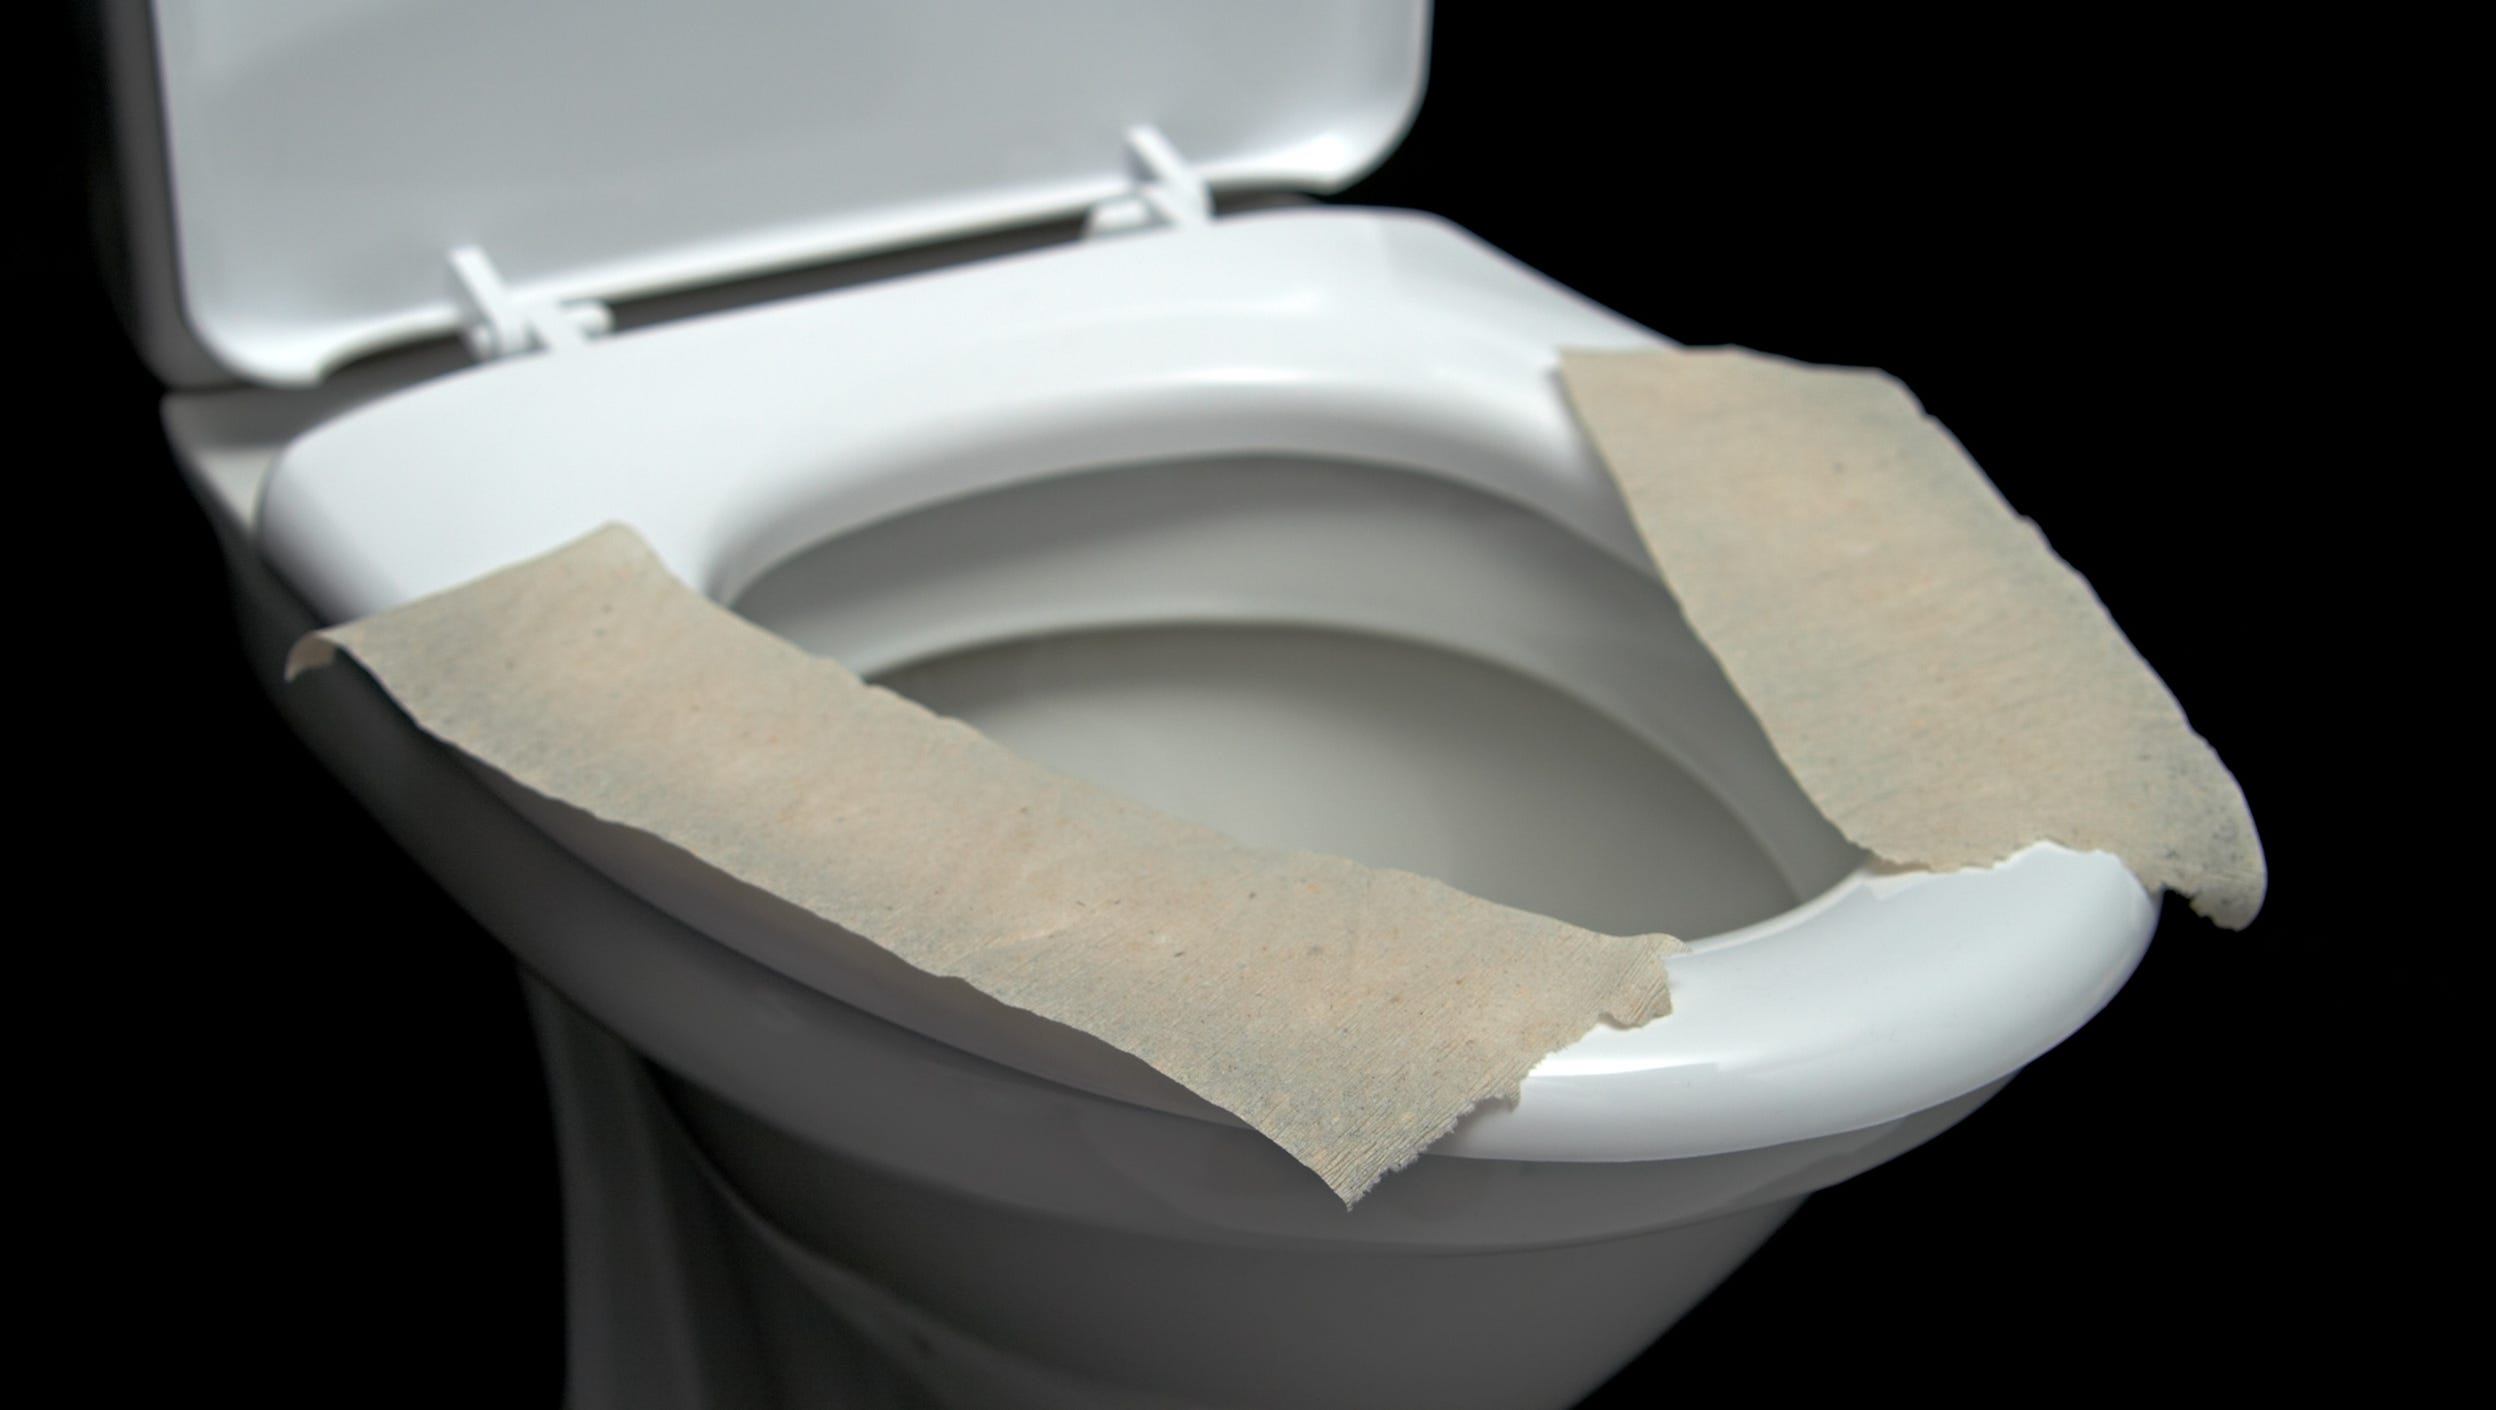 How To Use Toilet Seat Cover